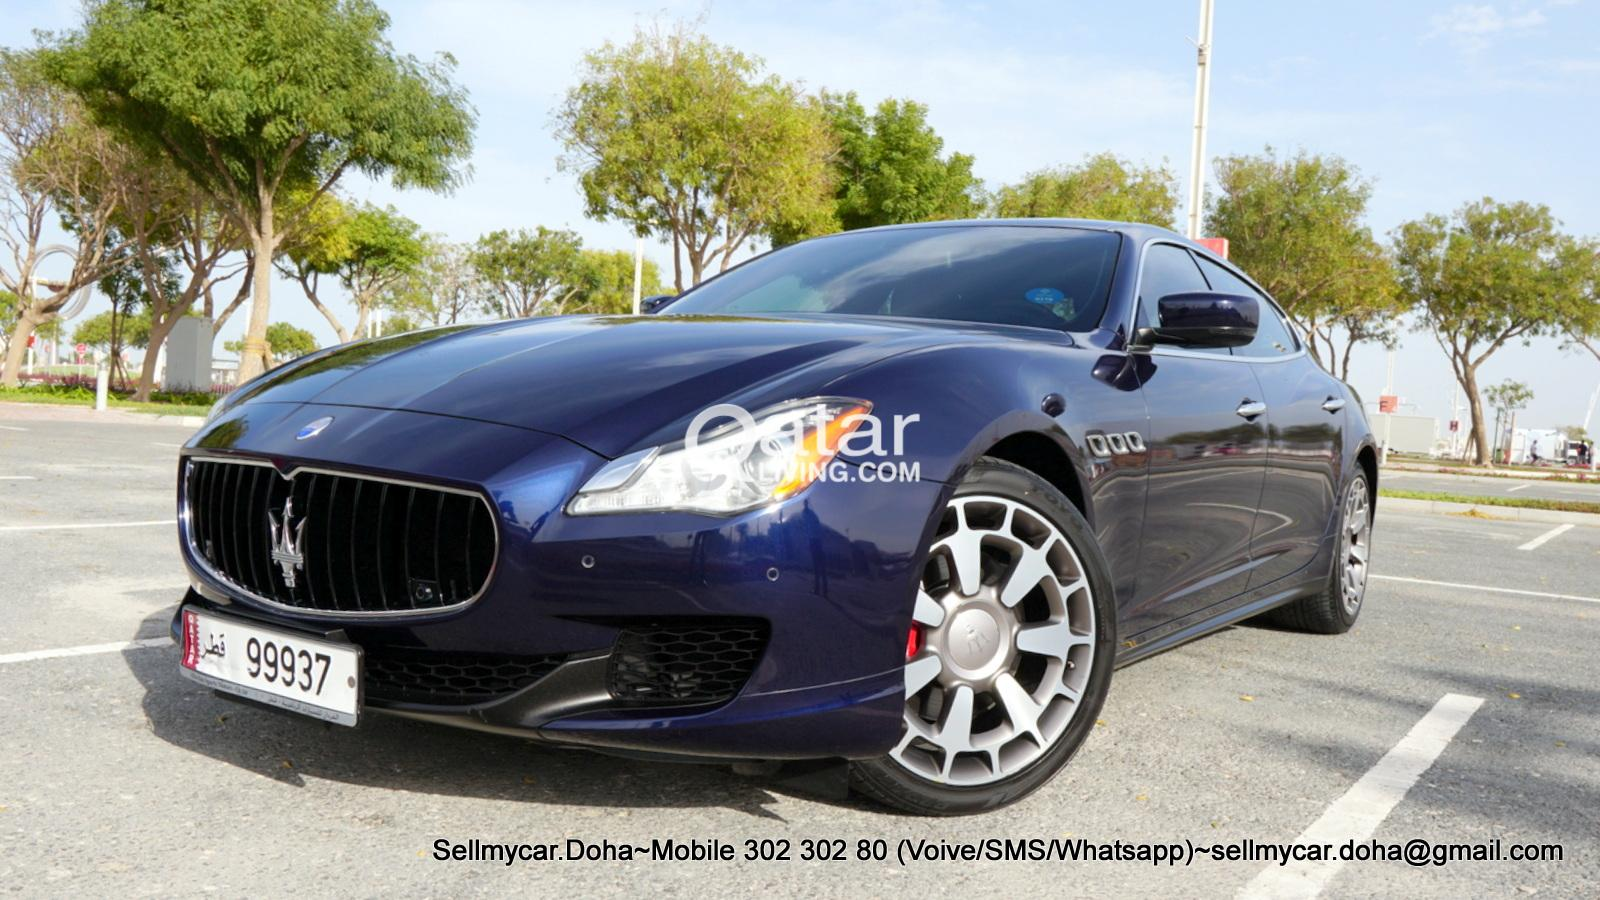 2016 Maserati Quattroporte S (Many More Photo Available Upon Request)